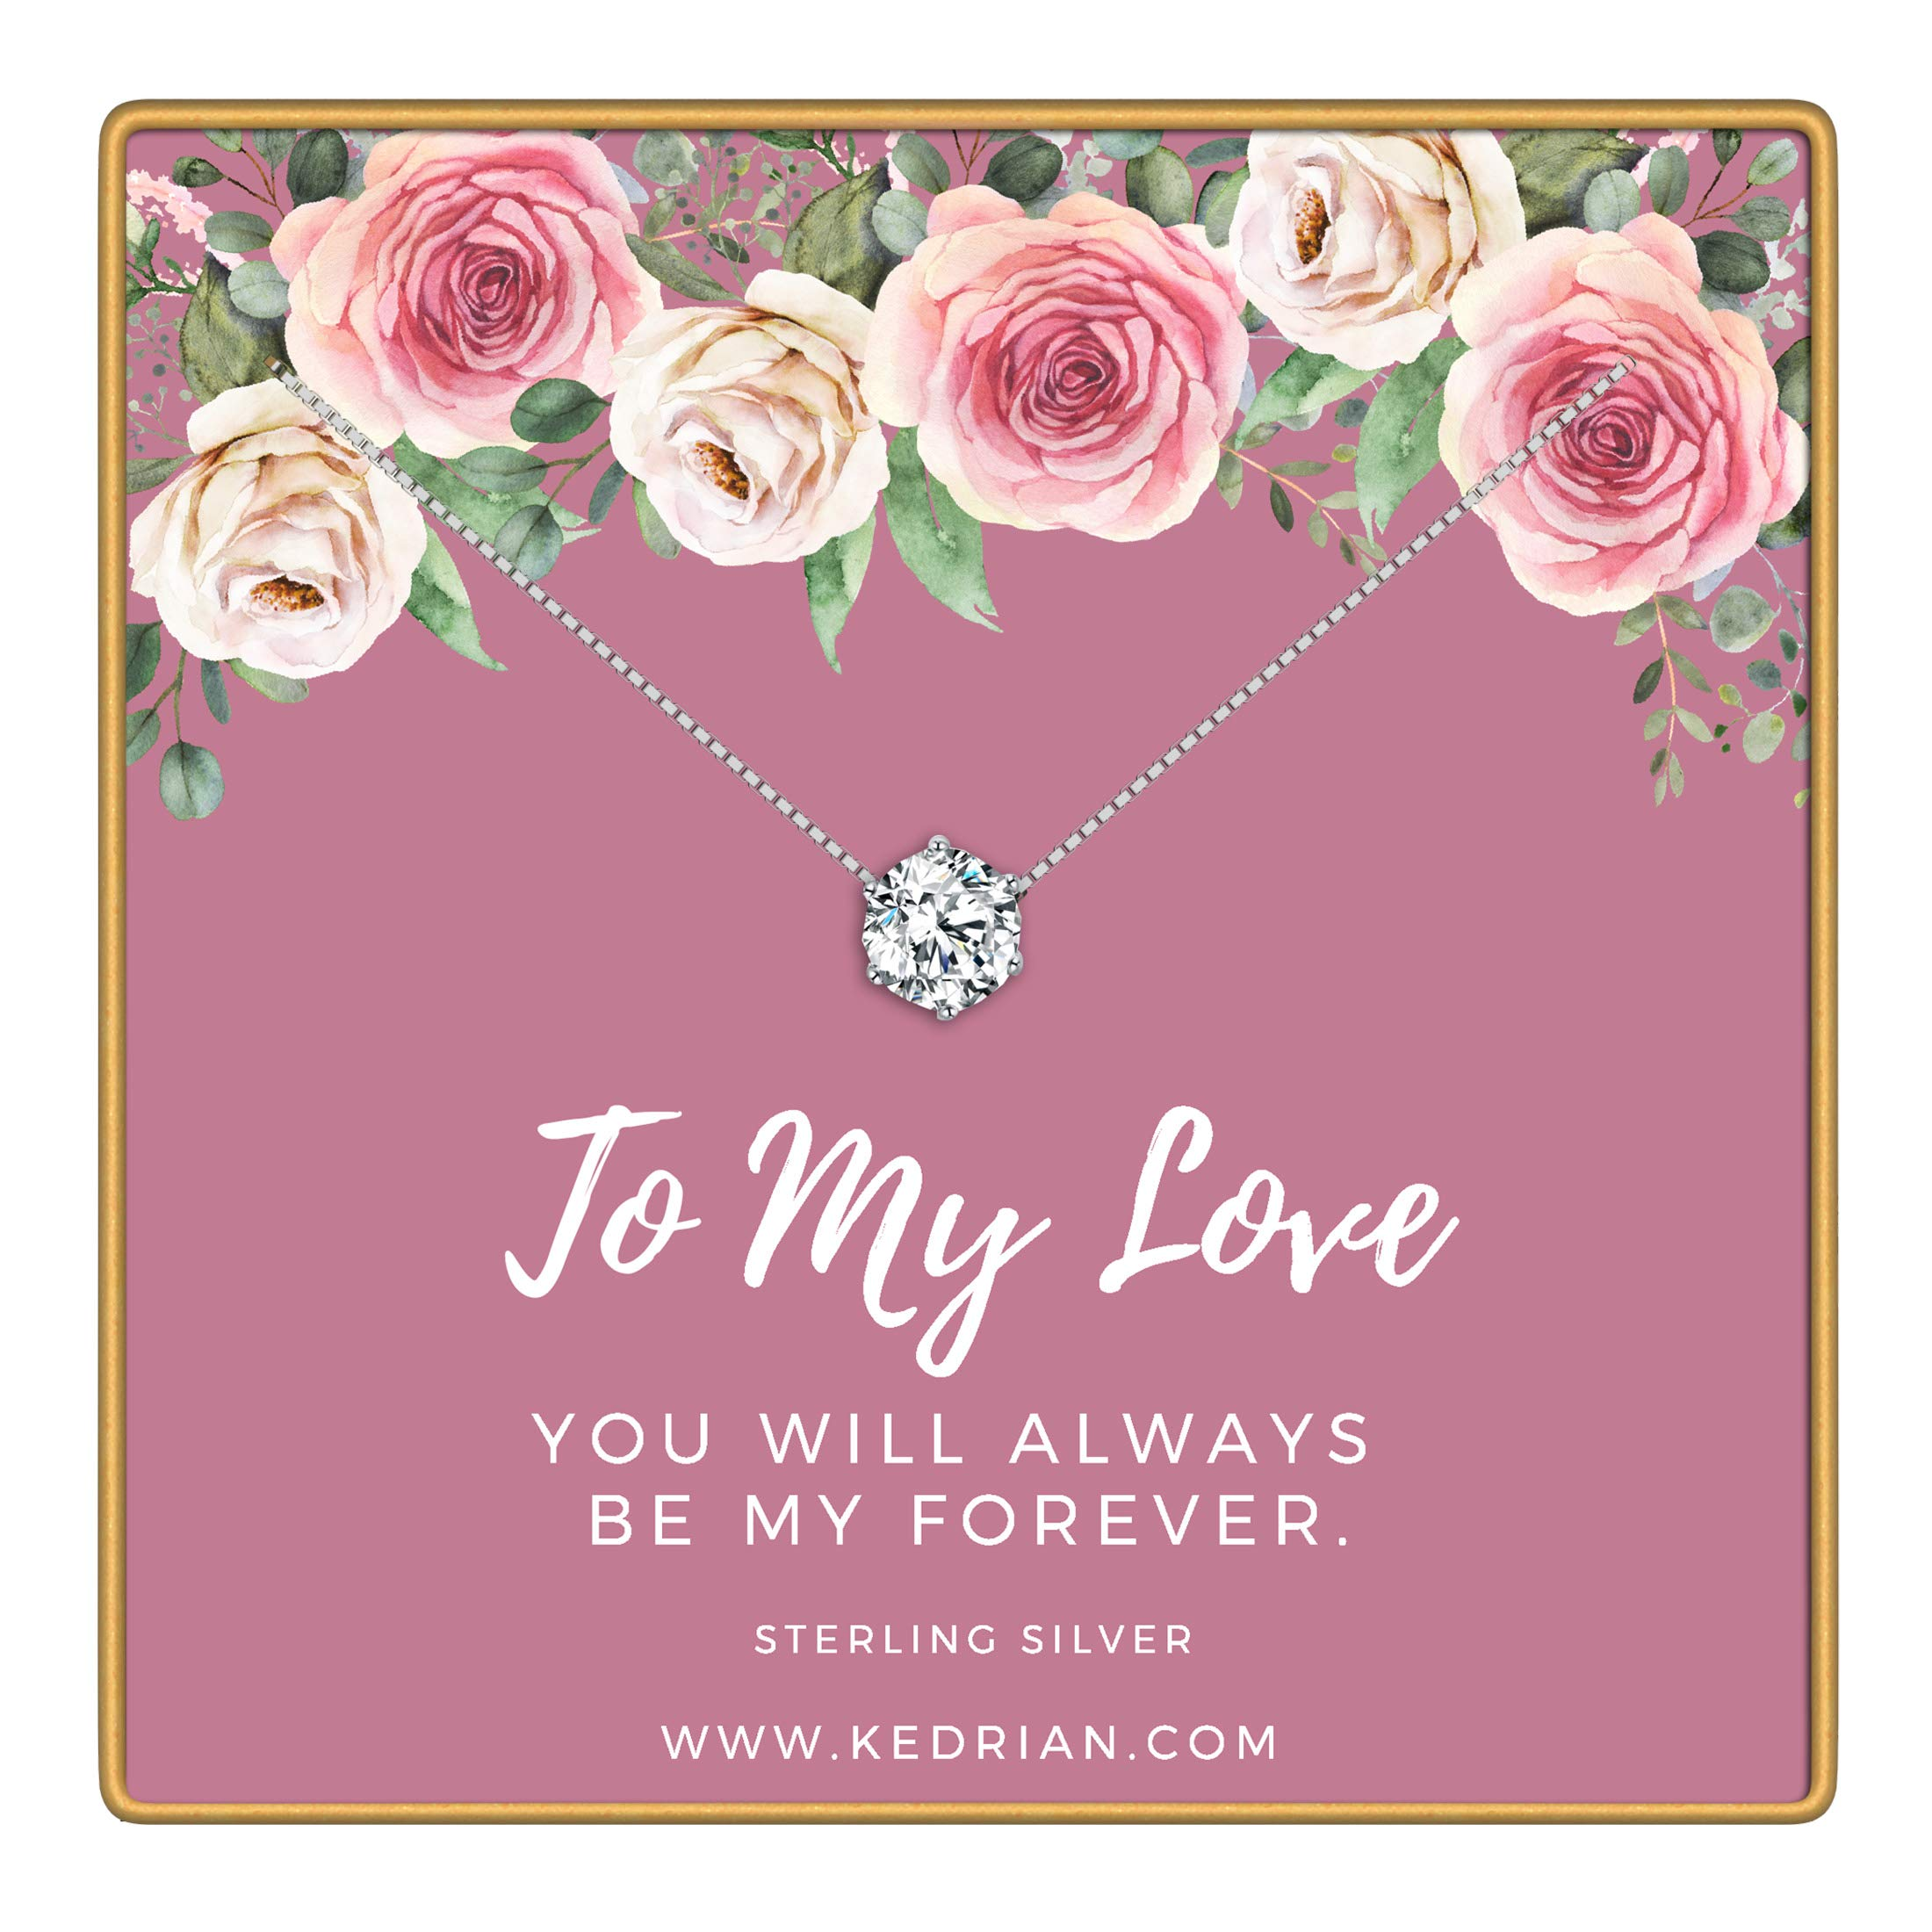 Girlfriend Gifts For Women Wife Gift Love Necklace Pendant Necklaces Mothers Day Birthday Ideas